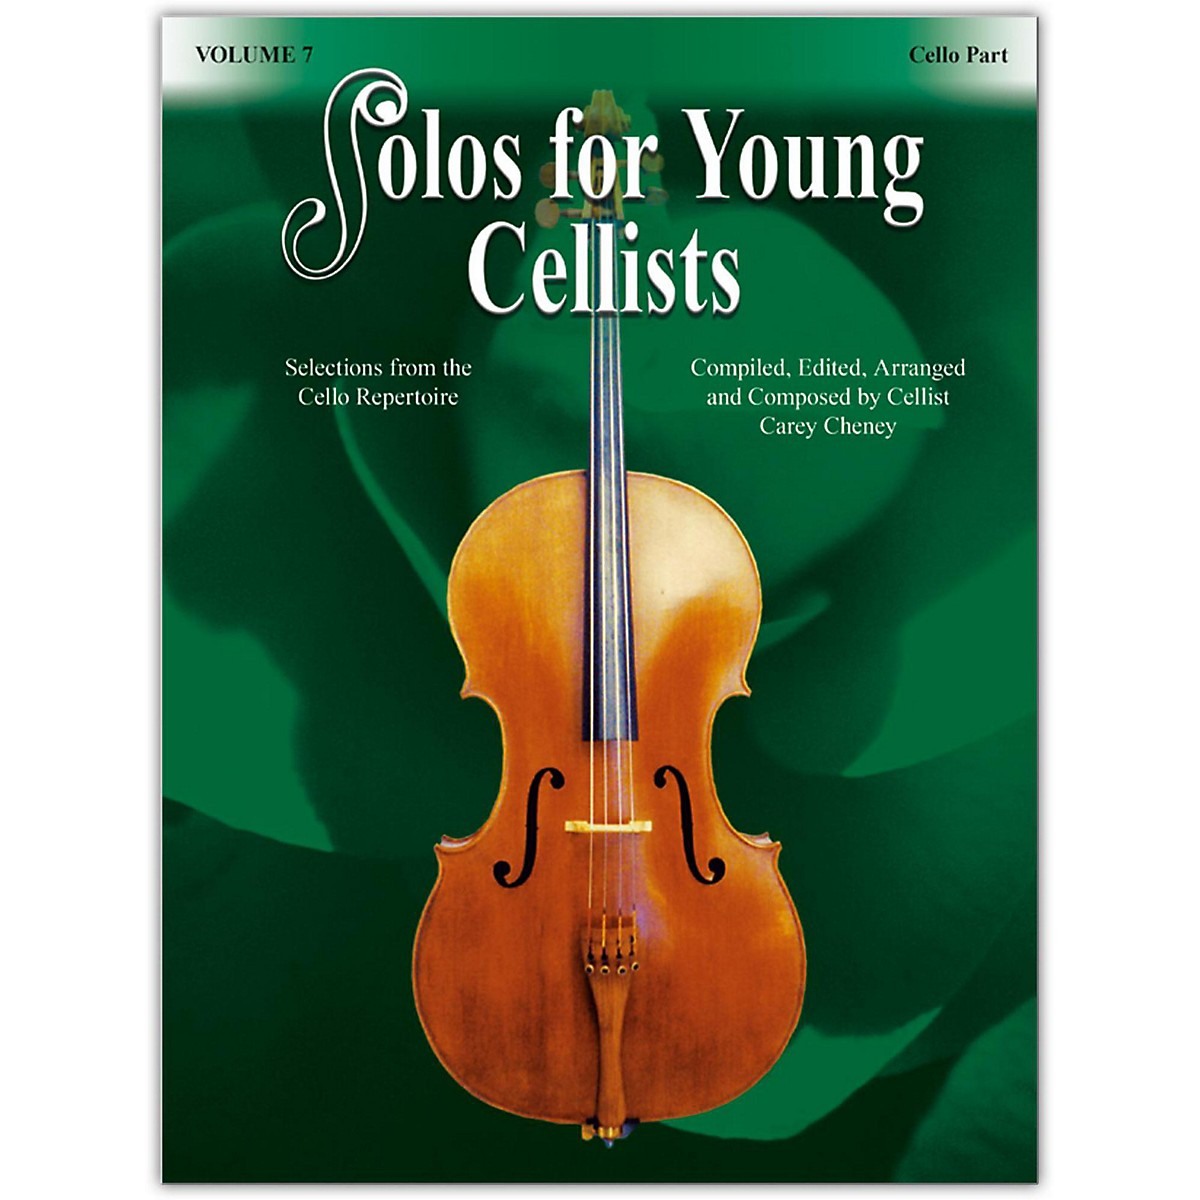 Suzuki Solos for Young Cellists, Volume 7